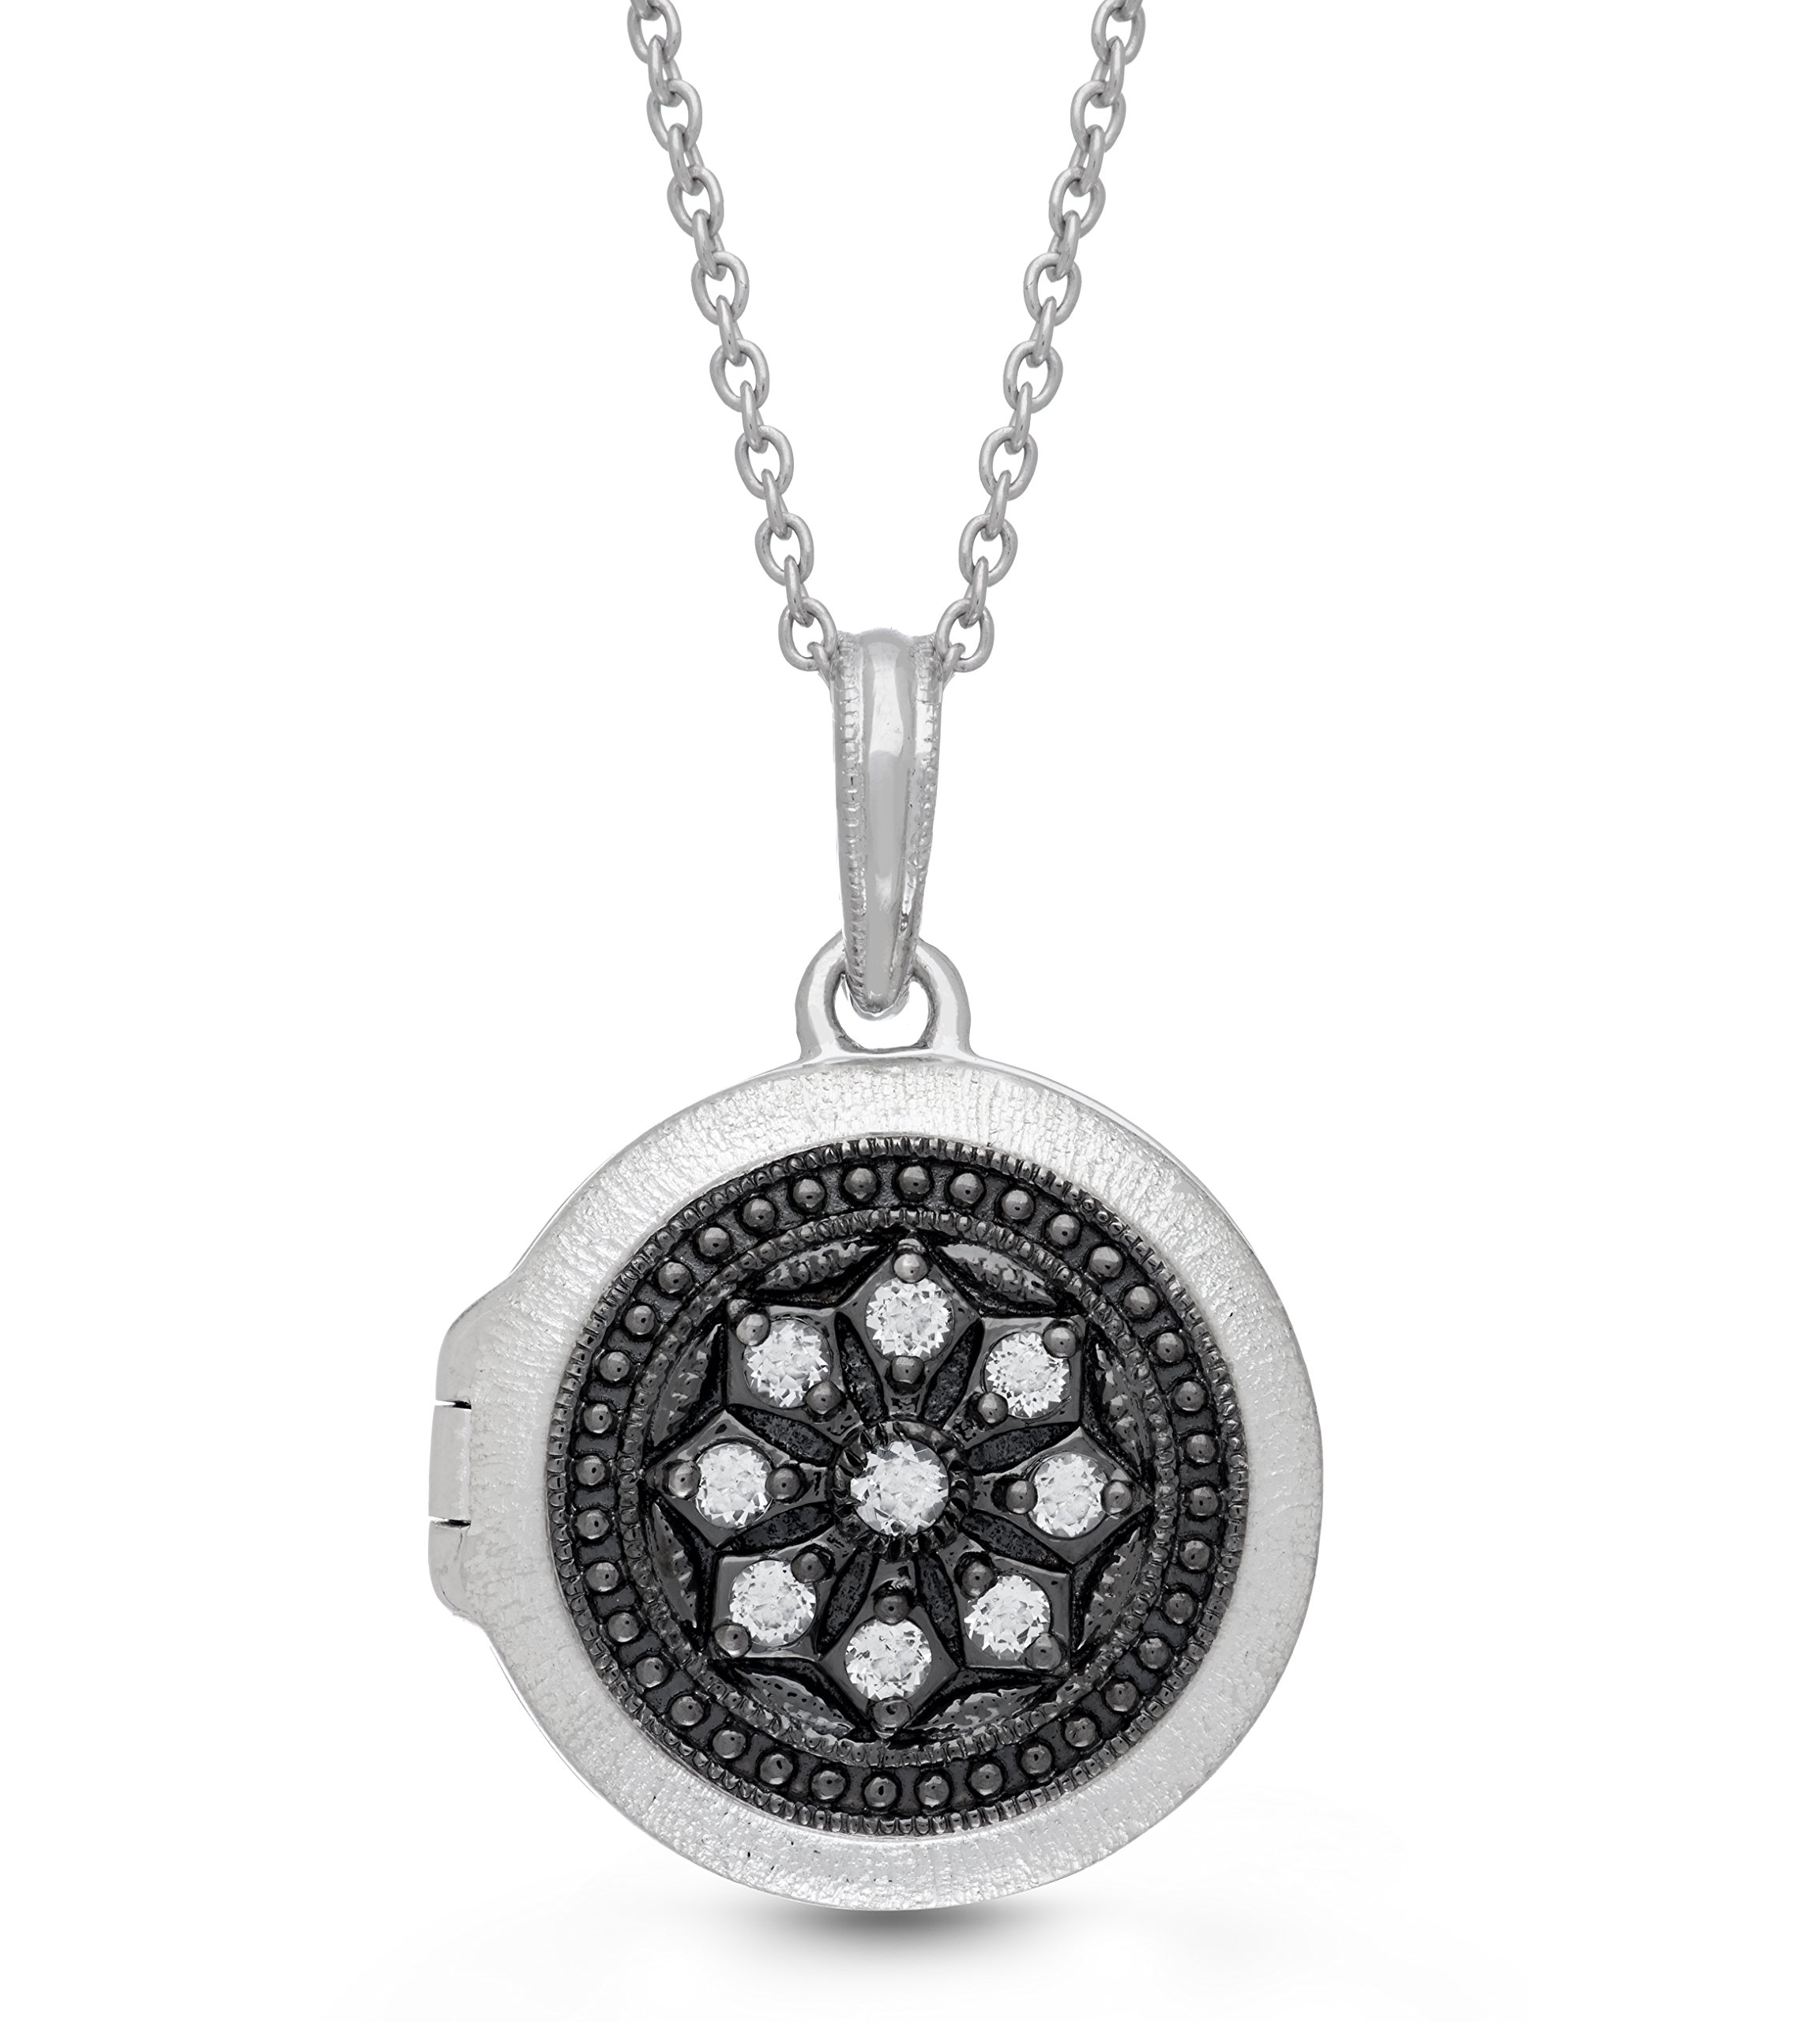 Oxidized-Sterling Silver-White Topaz-Custom Photo Locket Necklace-26inch chain-The Roxy by With You Lockets